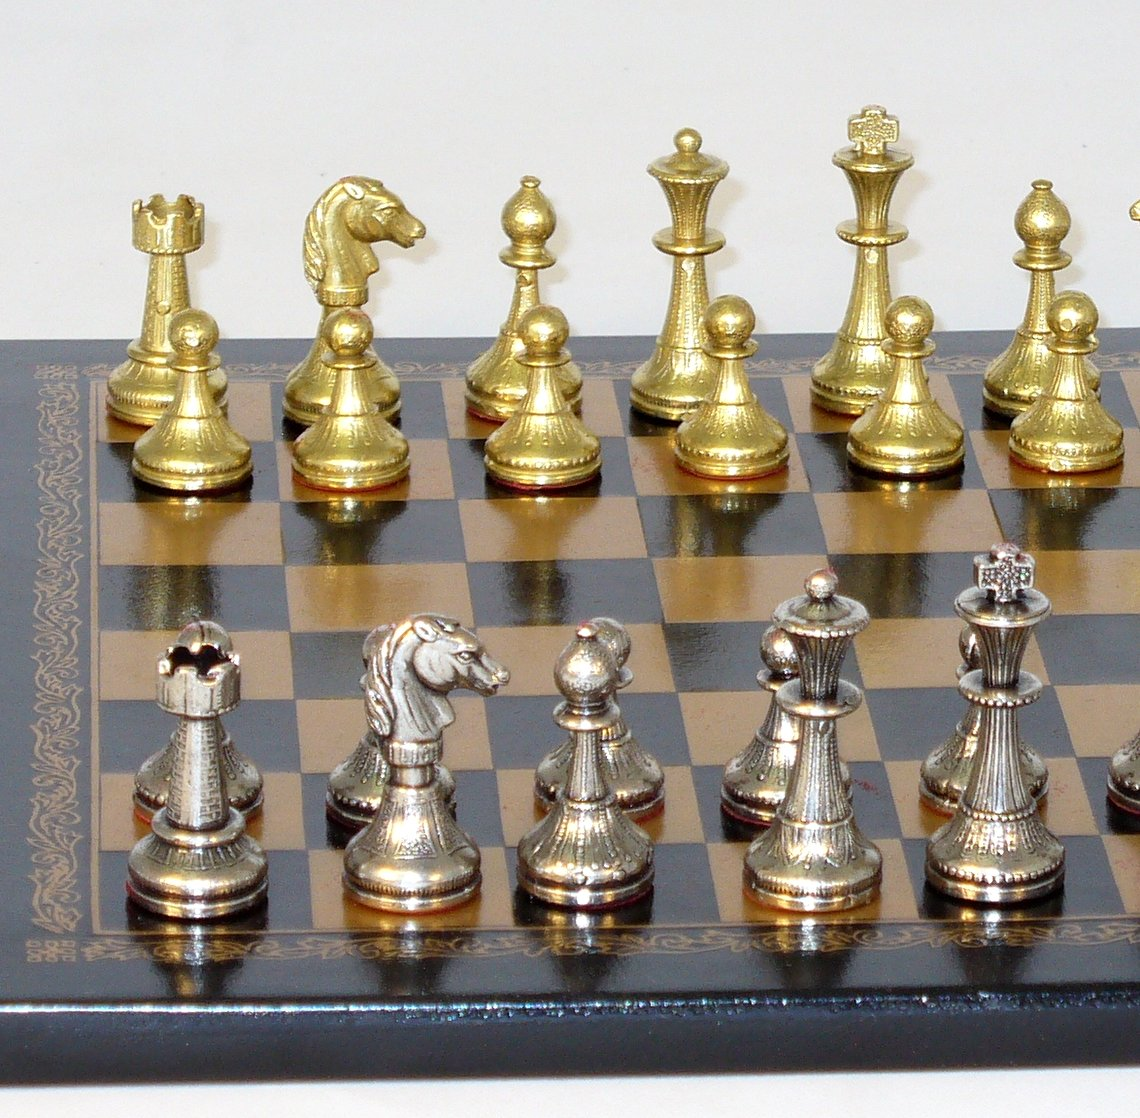 Metal and Brass Chess Set - 65M-204GN